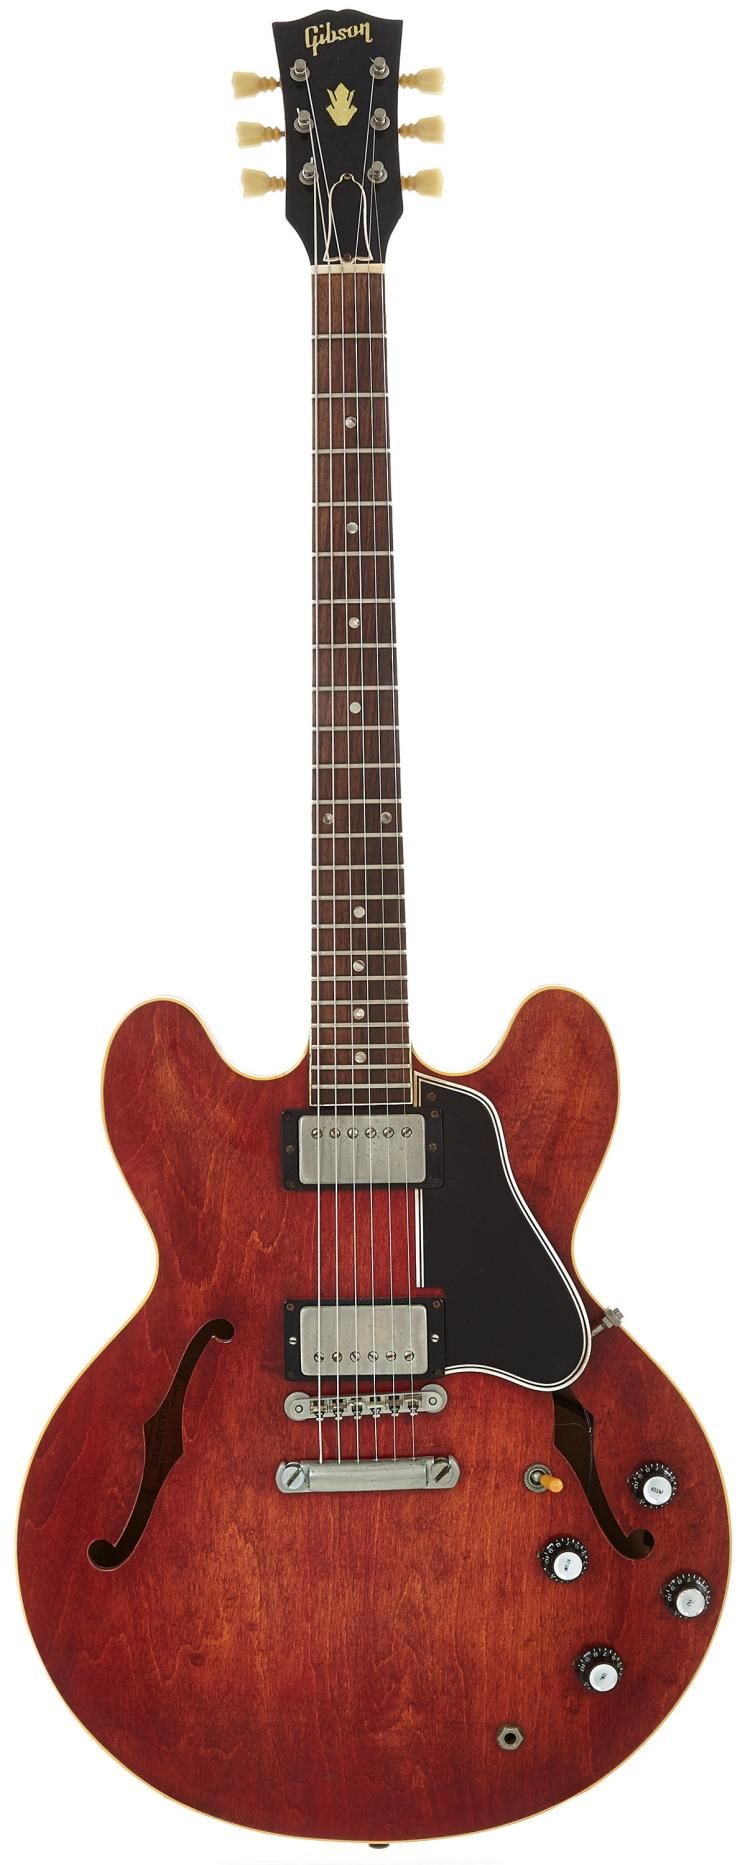 Sold Price 1962 Gibson Es 335 Cherry Semi Hollow Body Electric Gui February 6 0115 1 00 Pm Pst Gibson Guitars Guitar Jazz Guitar